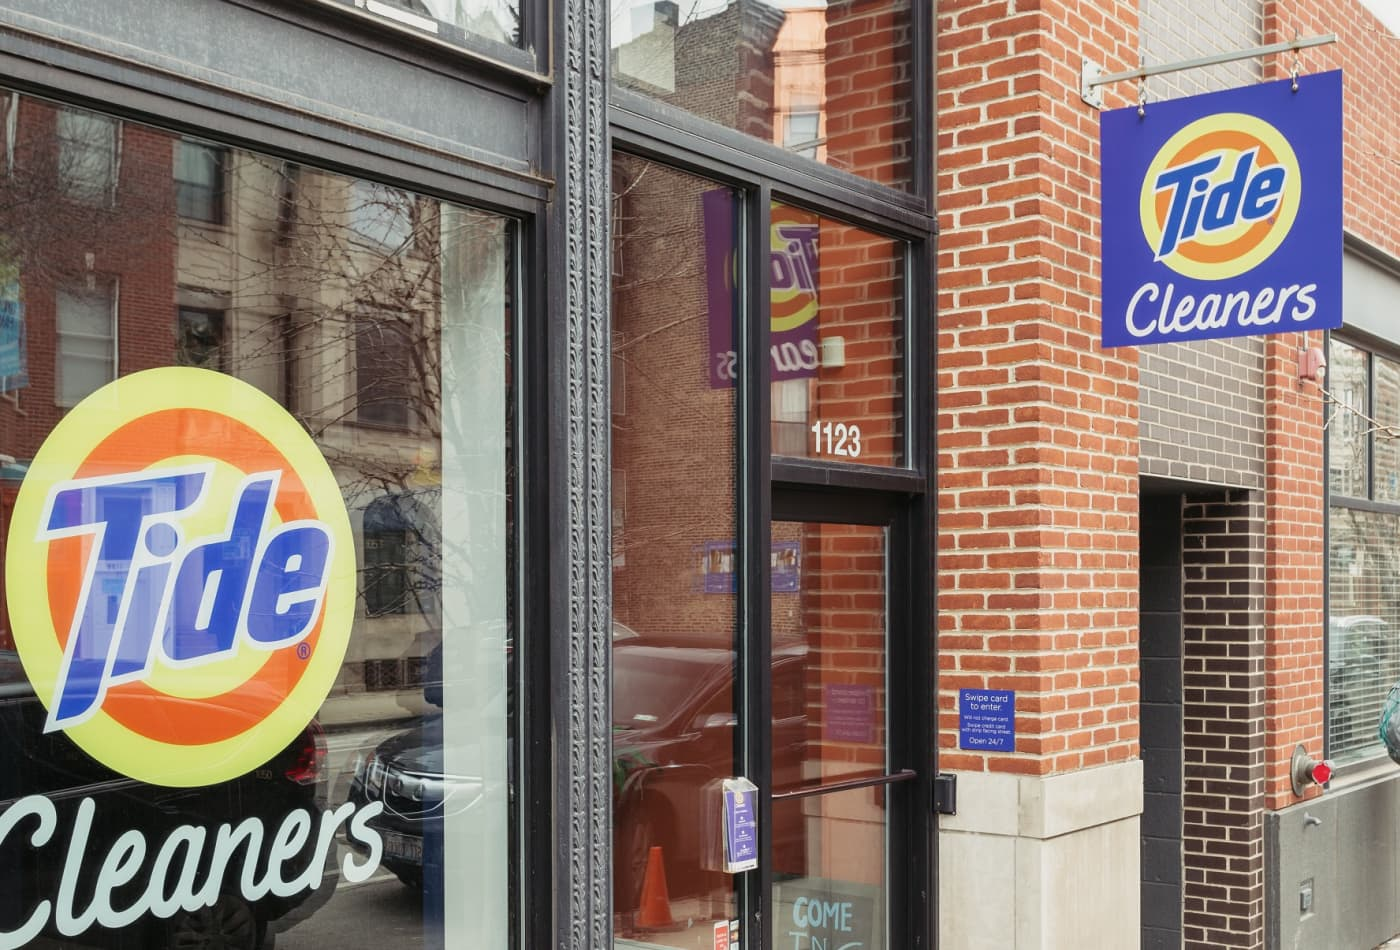 Top Cleaning Franchises 2020.Tide Aims To Have 2 000 Laundry Outlets By The End Of 2020